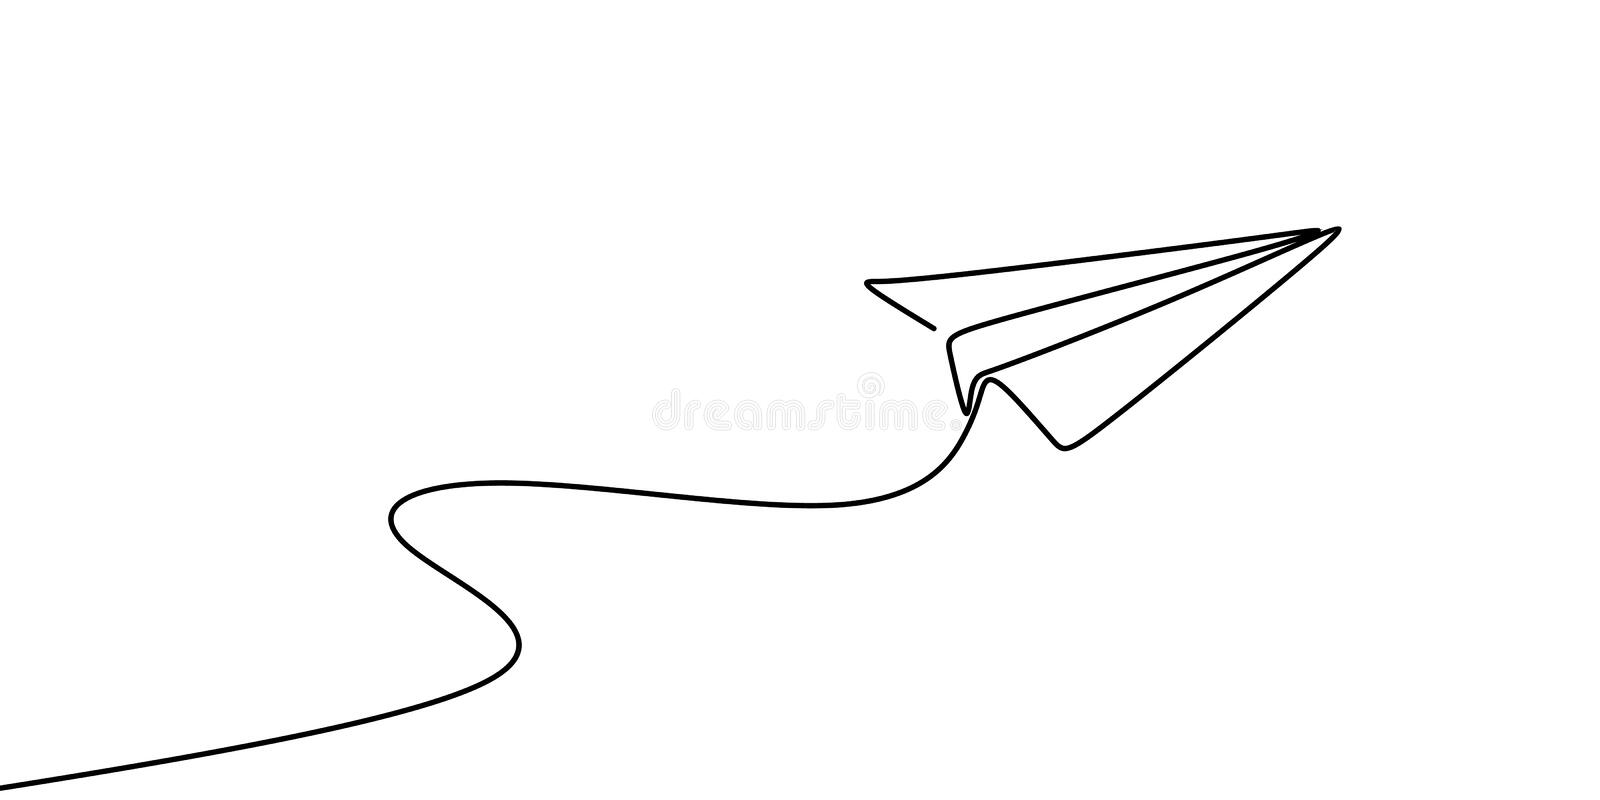 Continuous line drawing of paper plane vector illustration. Design vacation graphic outline icon isolated air art linear airplane sketch travel fly transport vector illustration